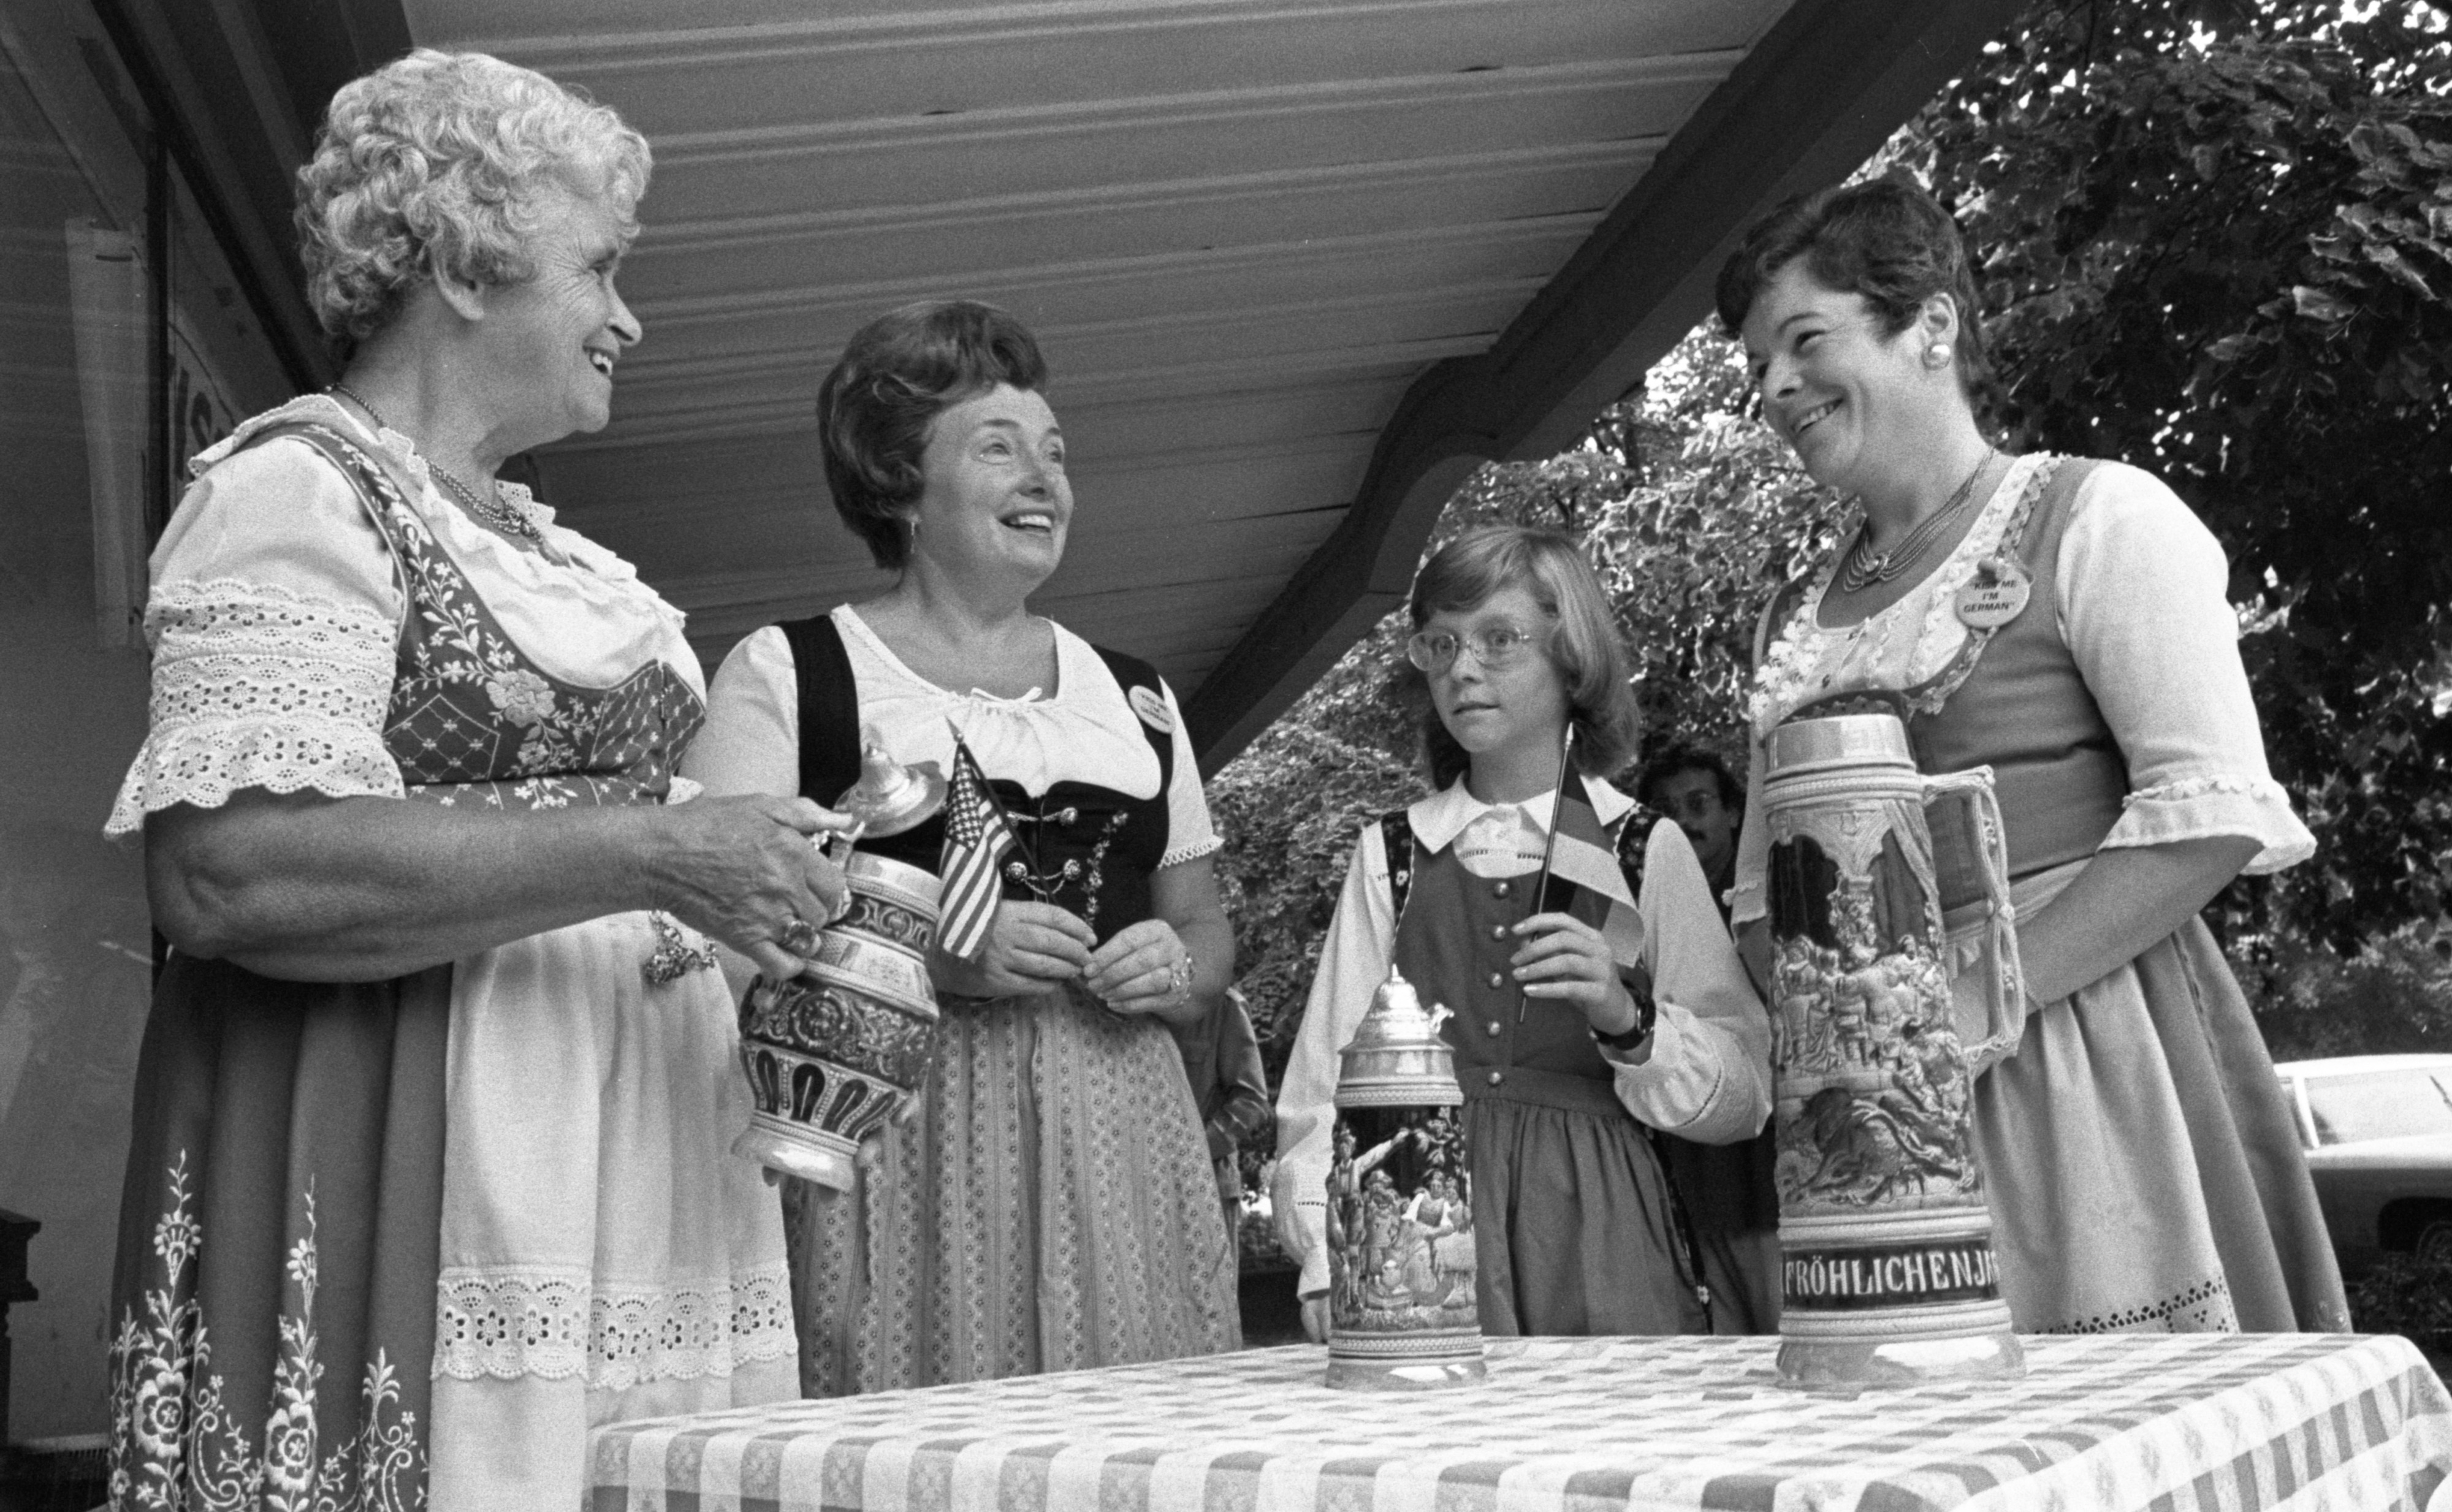 Women Prepare The German Gift Table For The Ann Arbor Ethnic Fair, September 1975 image